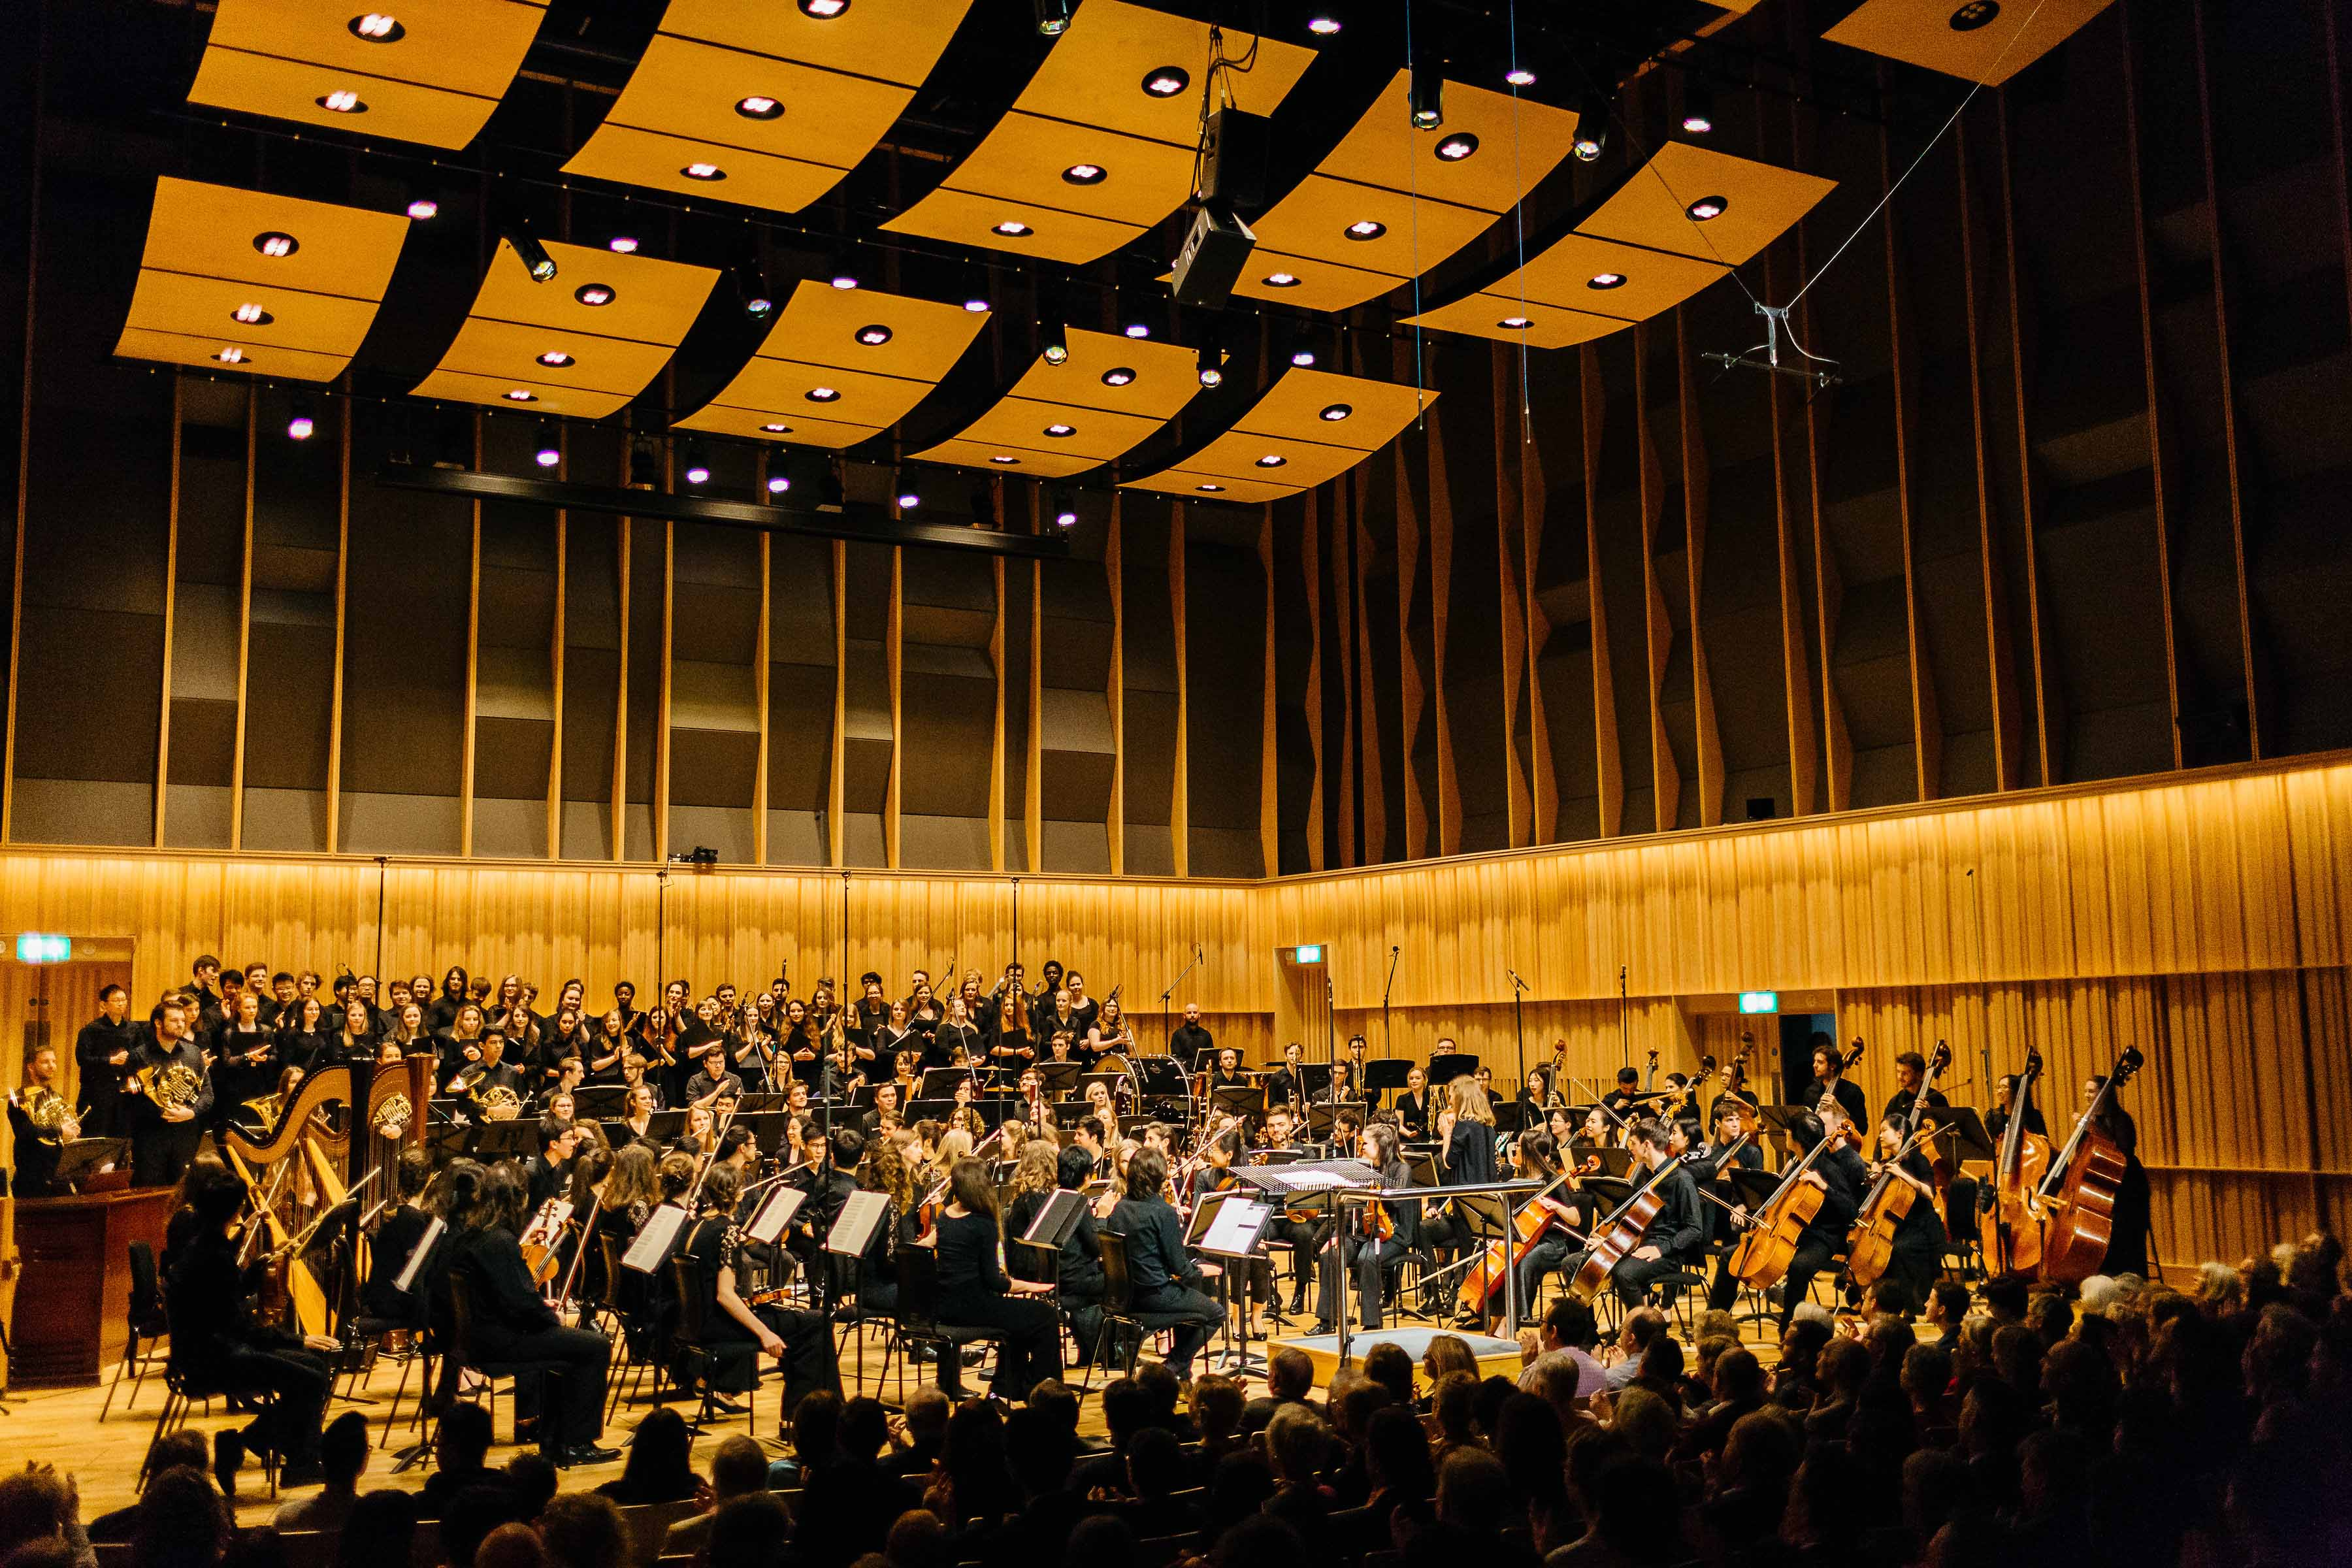 2018-11/1541410387_city-s-musical-heritage-celebrated-in-special-concert